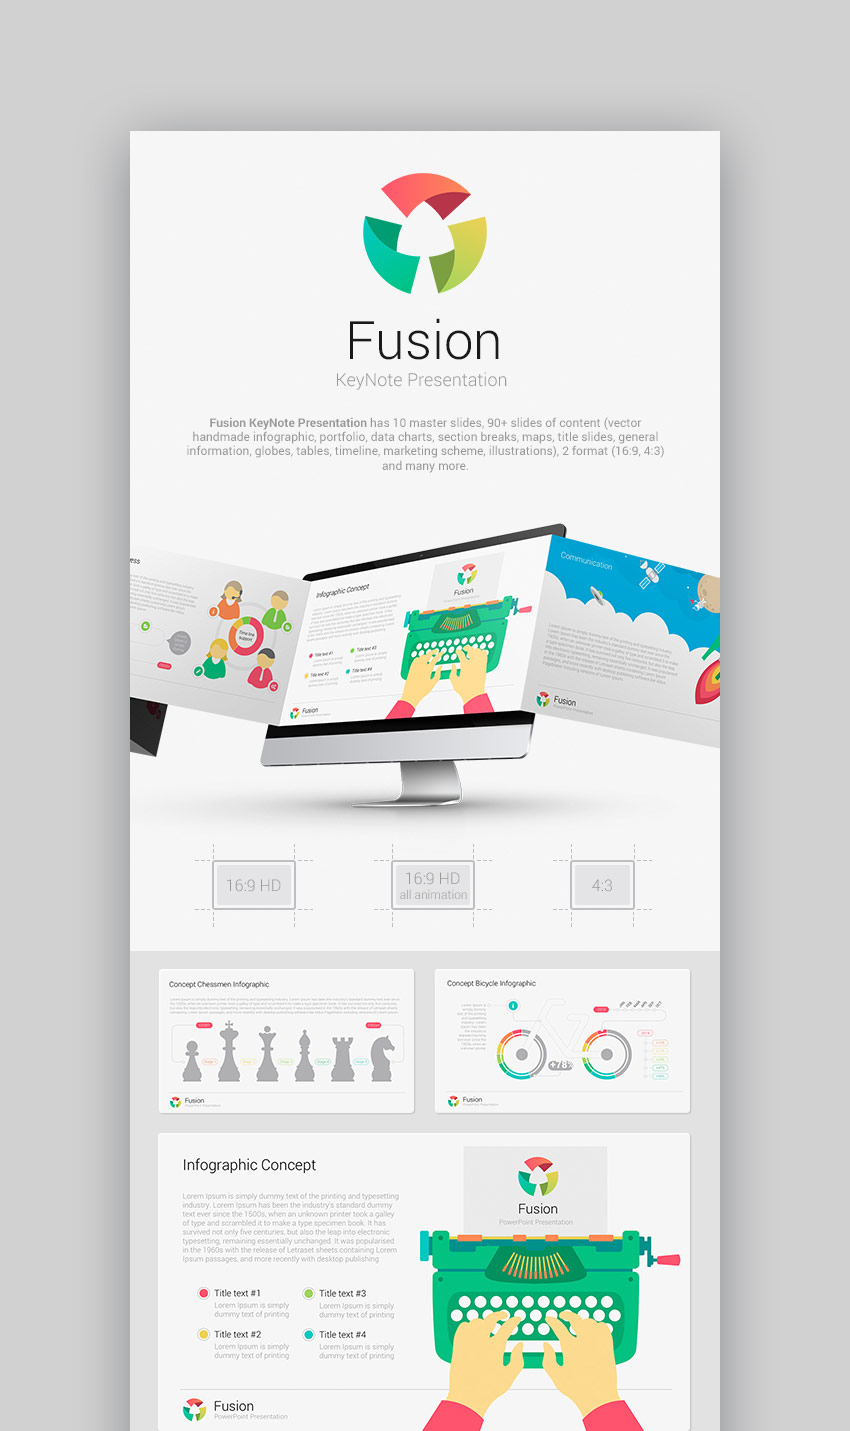 20 Best Keynote Presentation Templates For Mac Users Color Circuit Board Electronic Template Large Business Cards Pack Of Fusion Presentations